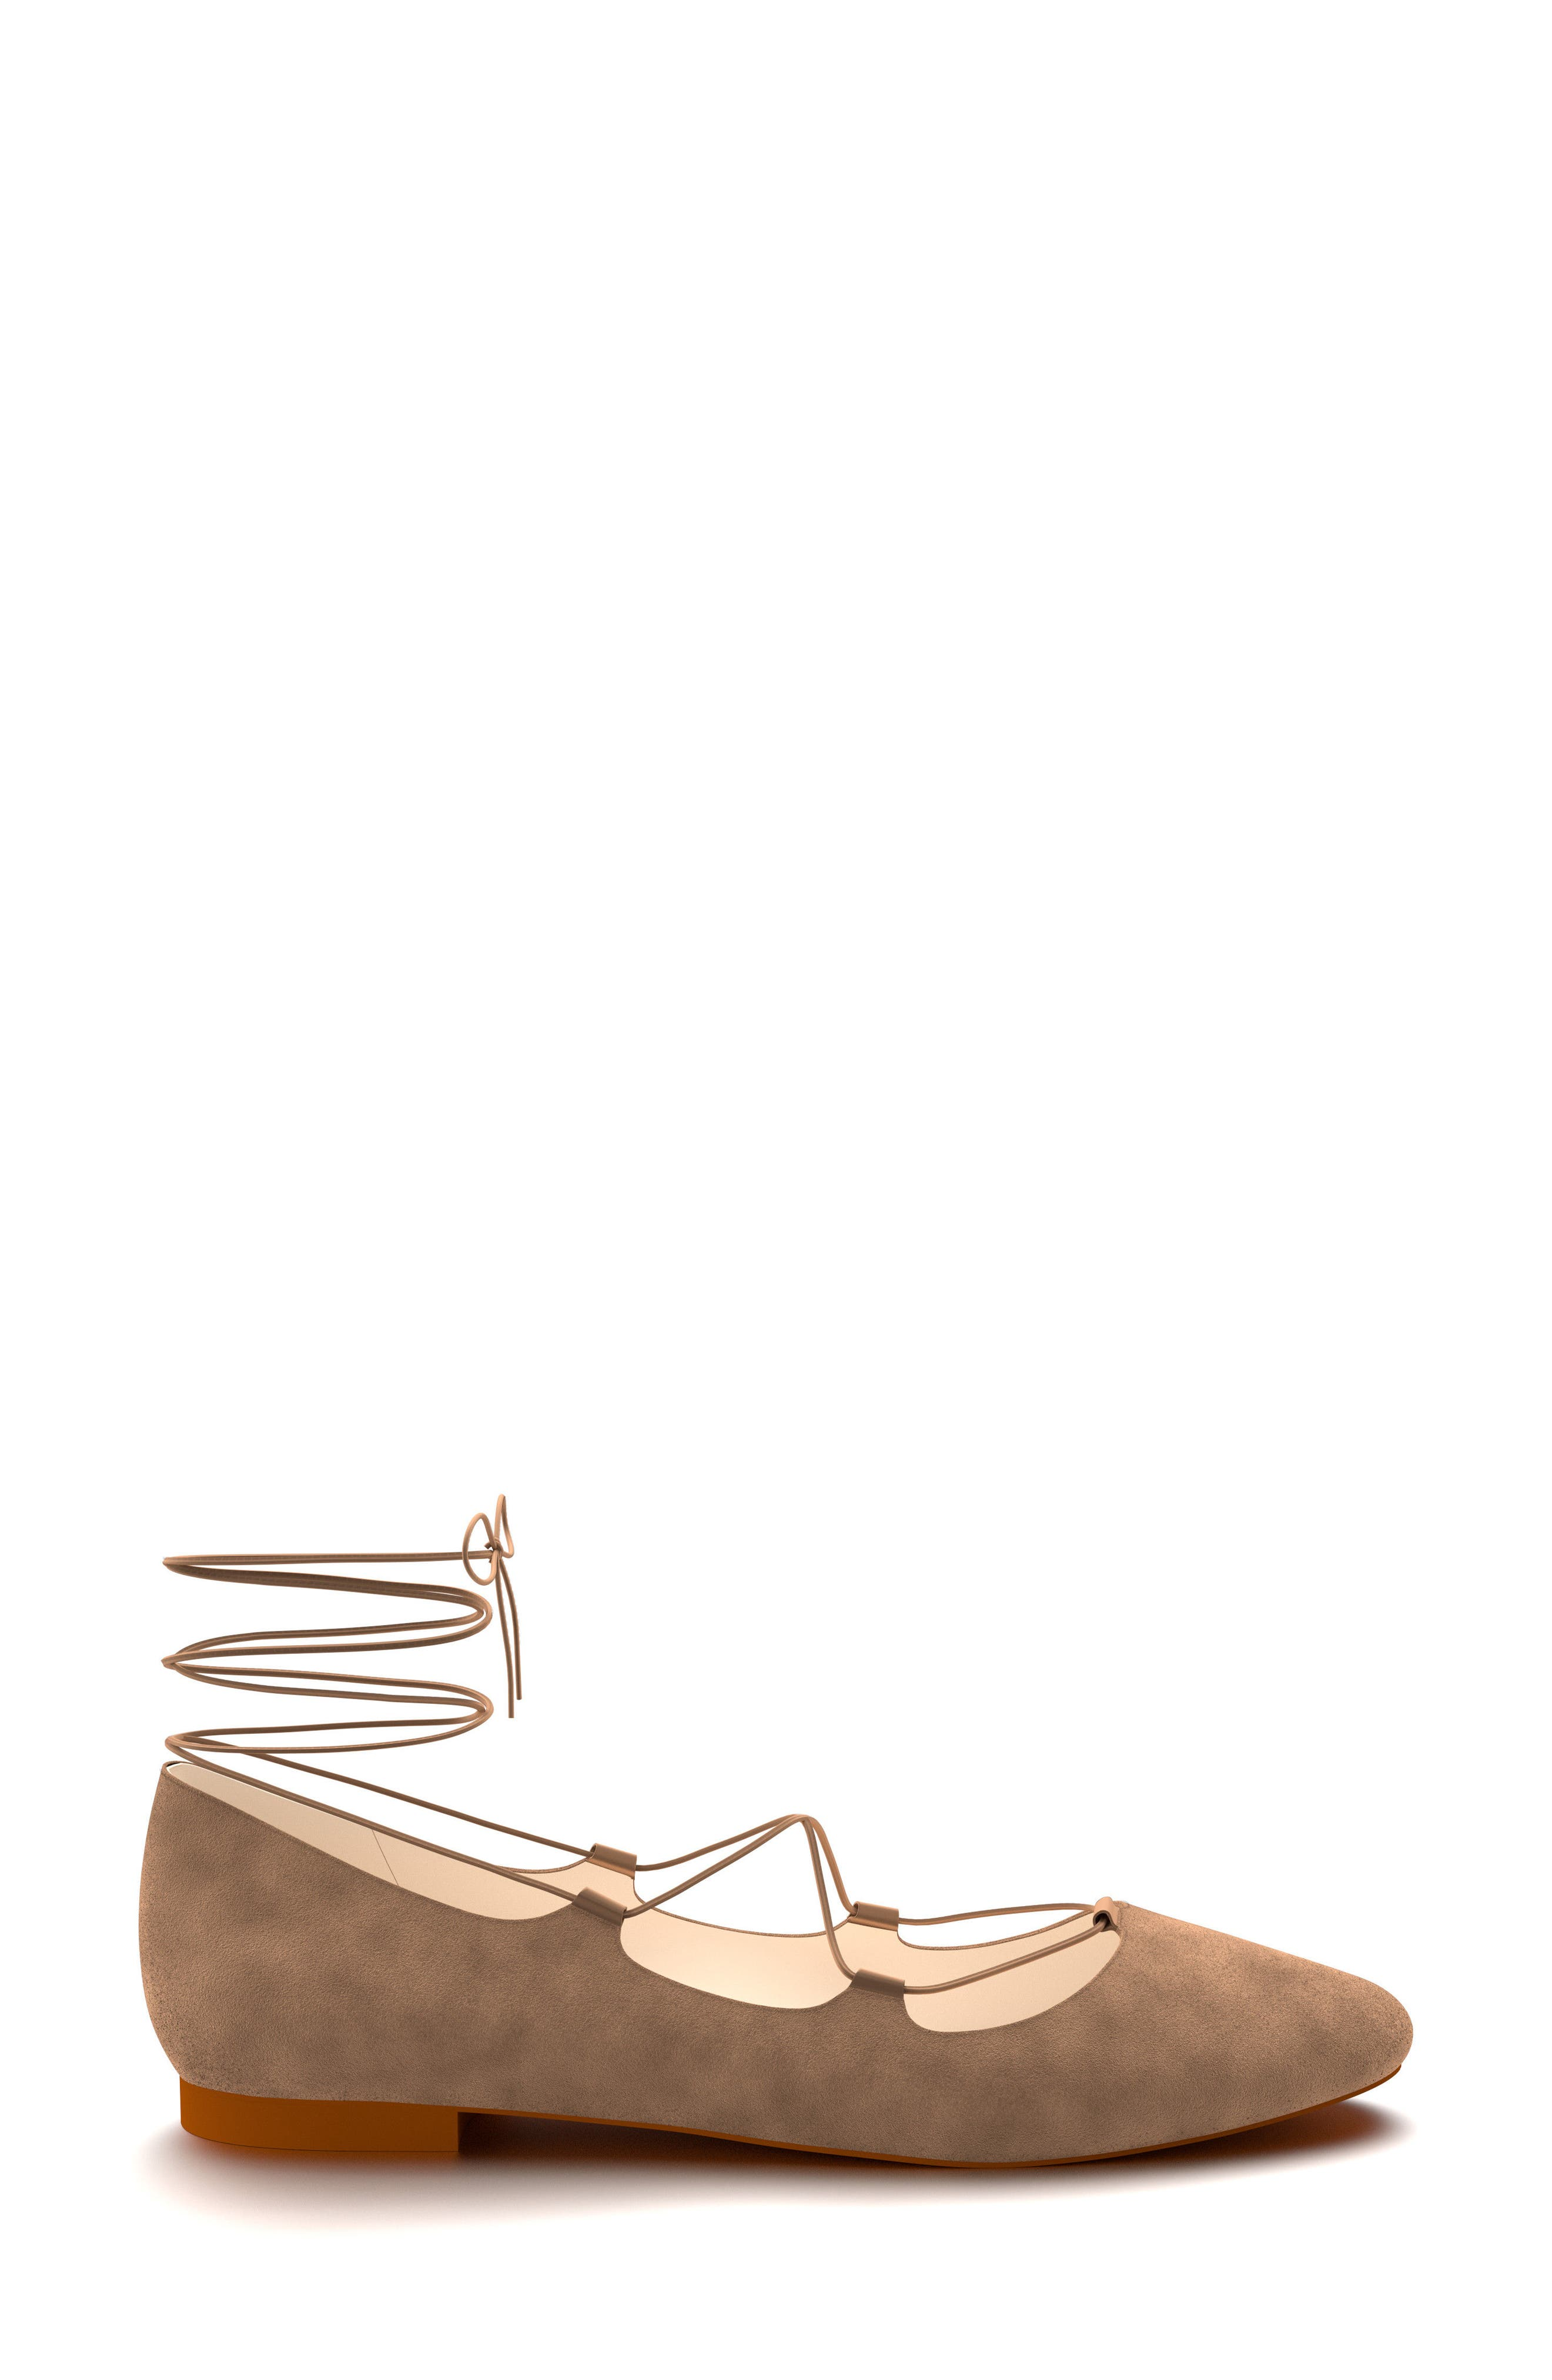 Ghillie Pointy Toe Ballet Flat,                             Alternate thumbnail 2, color,                             Tan Suede